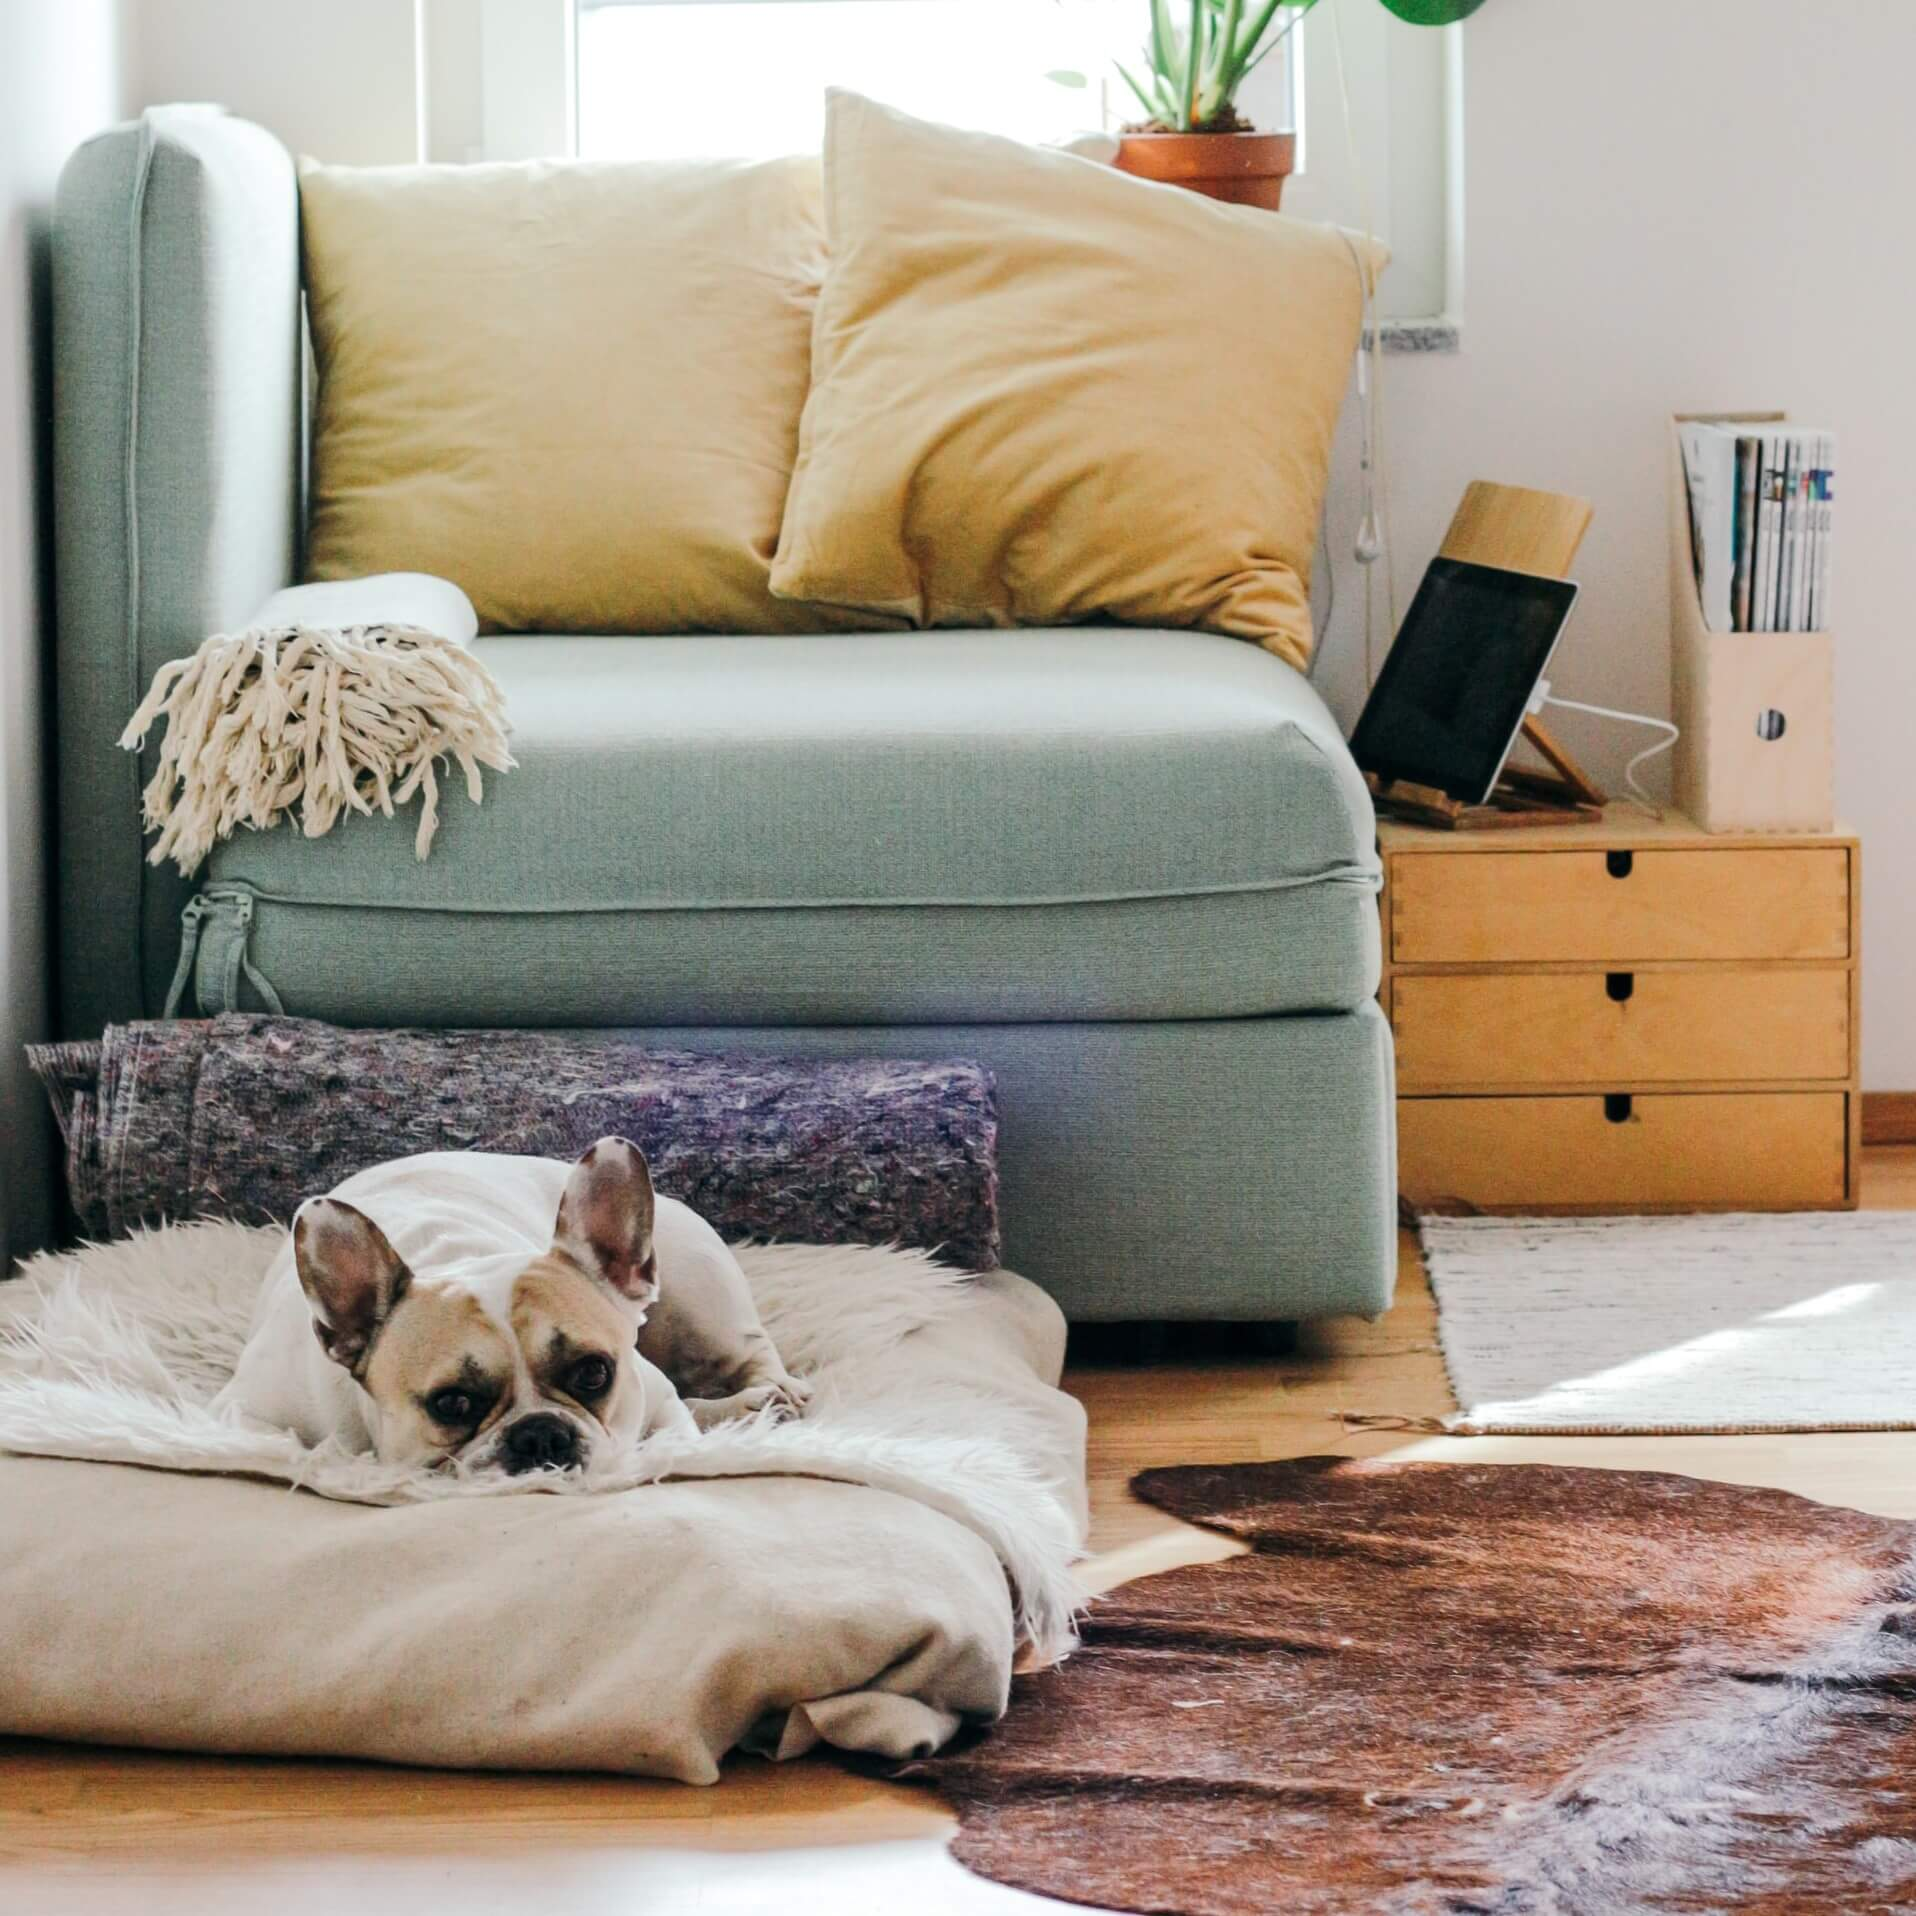 Is House Sitting Safe and Other House Sitting FAQs